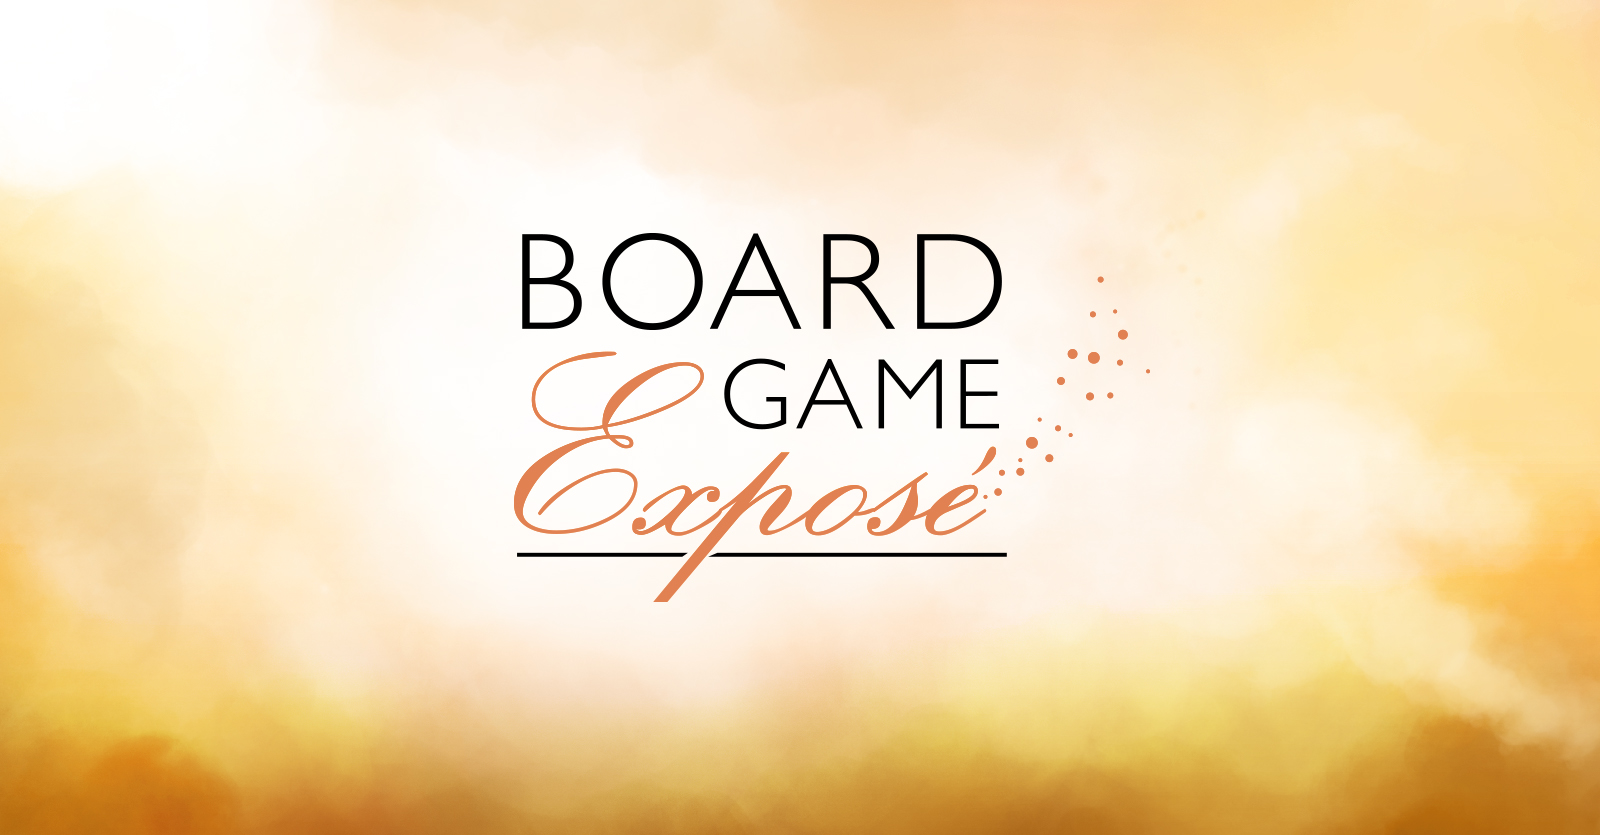 Board game exposure logo design, icons and graphic design